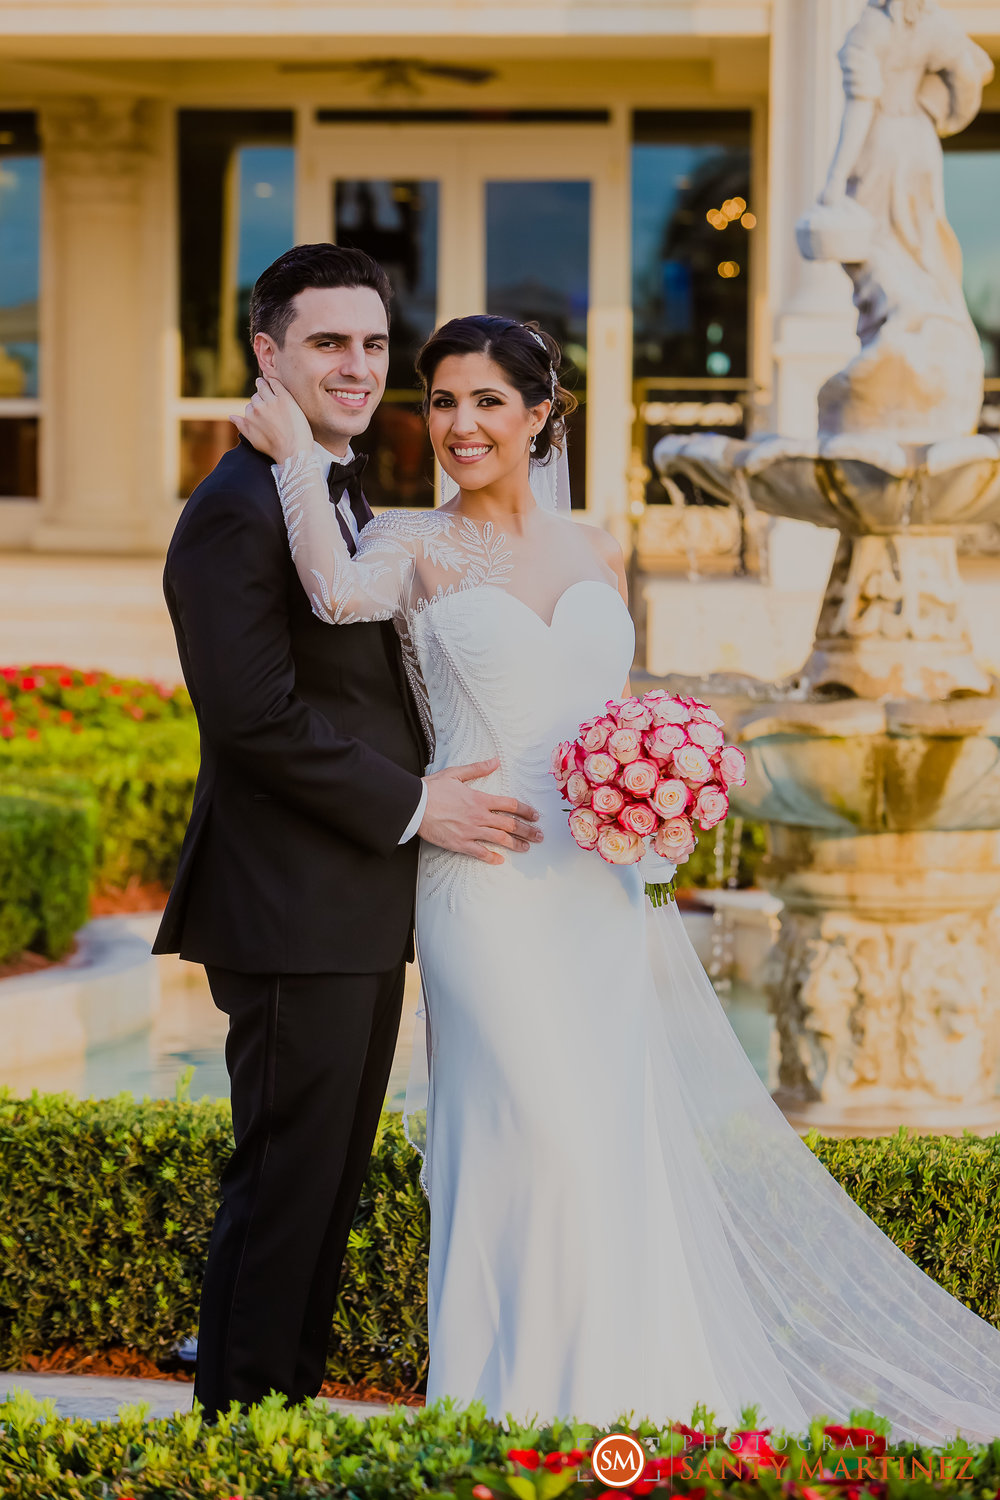 Wedding Trump National Doral Miami - Santy Martinez Photography-2.jpg